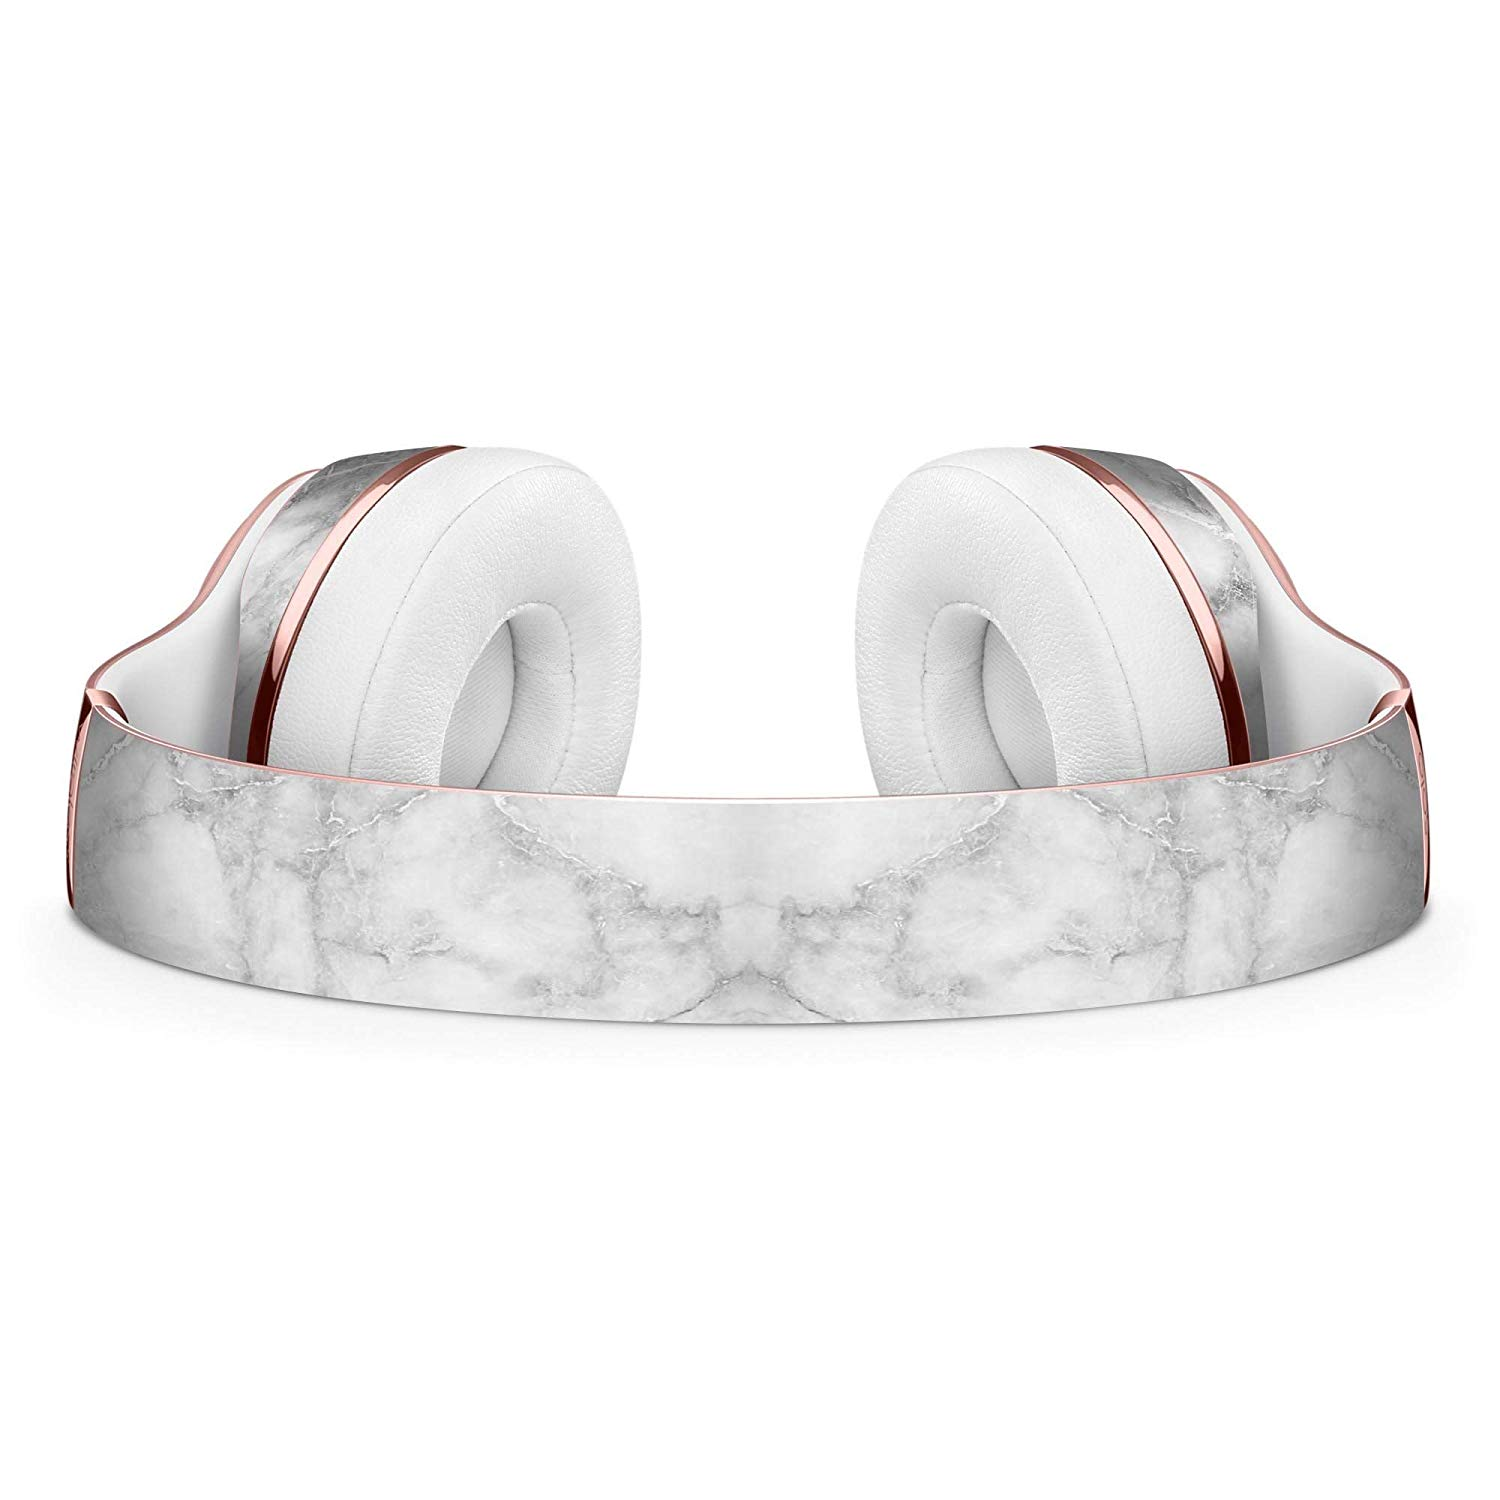 Marble skin for Beats by Dre headphones